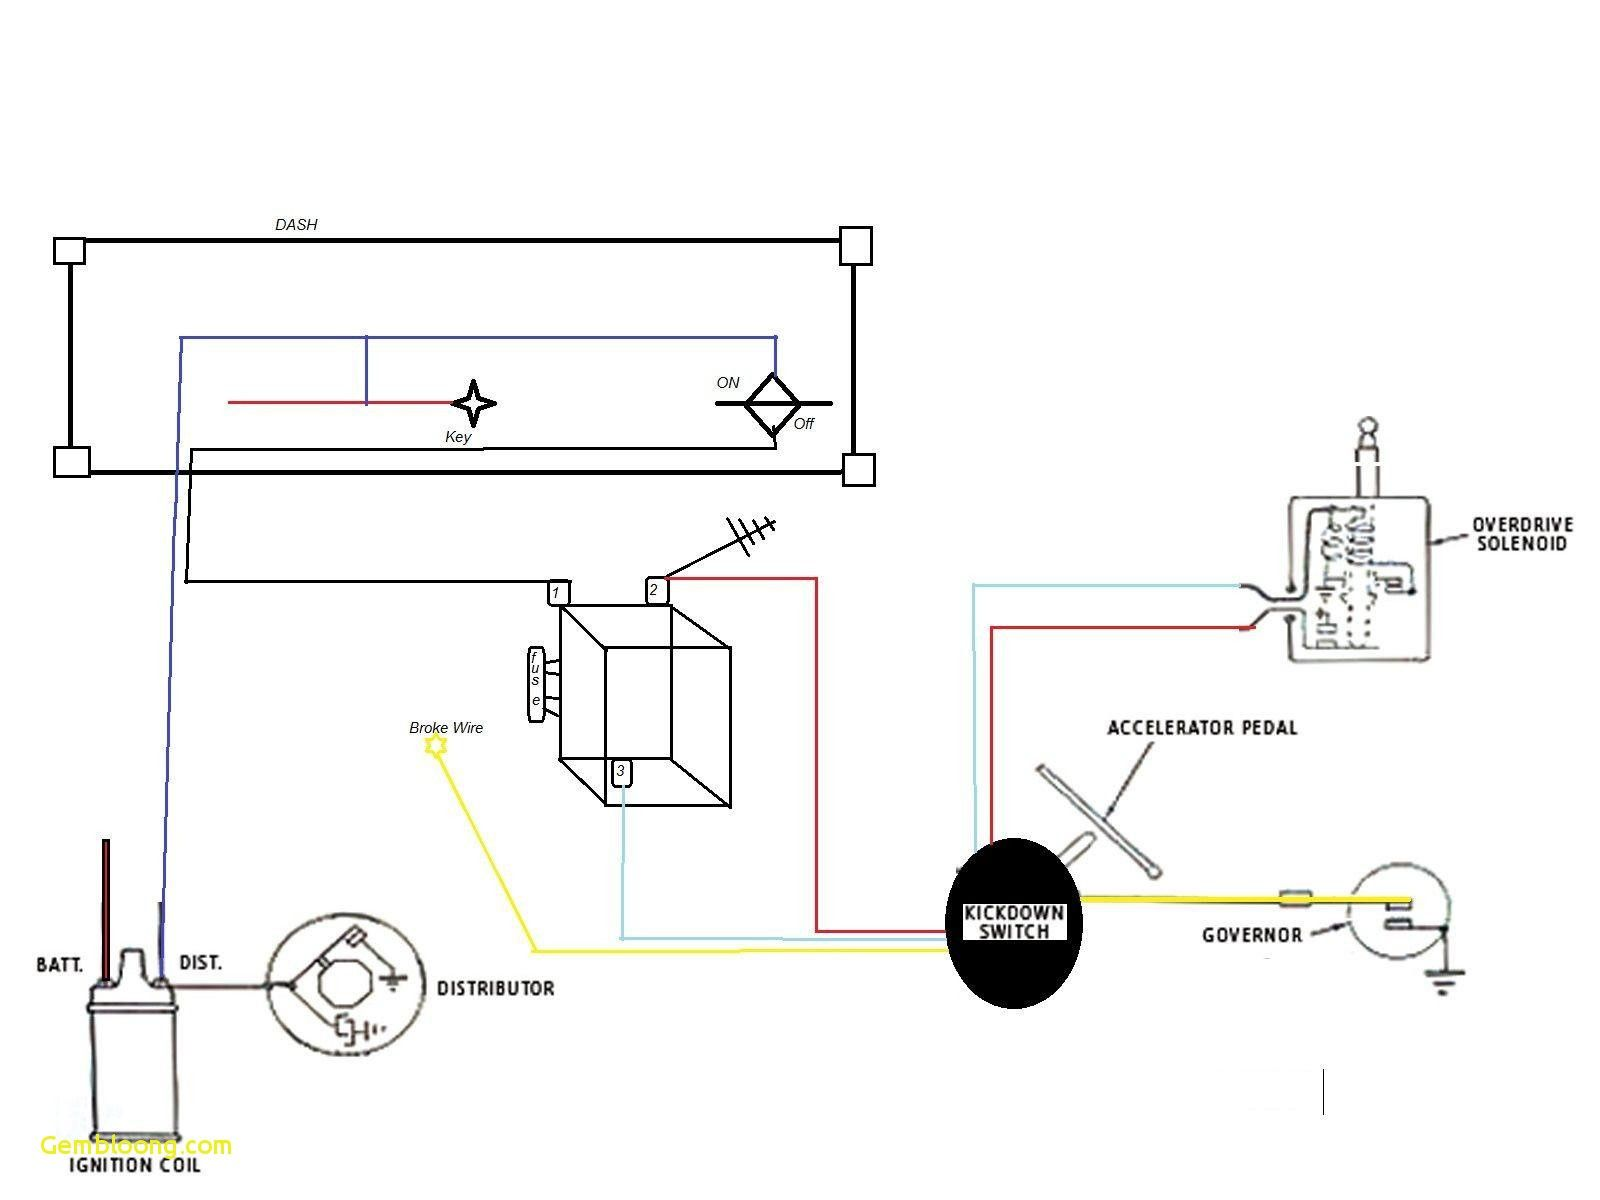 New Wiring Diagram for House Light Switch (With images ...